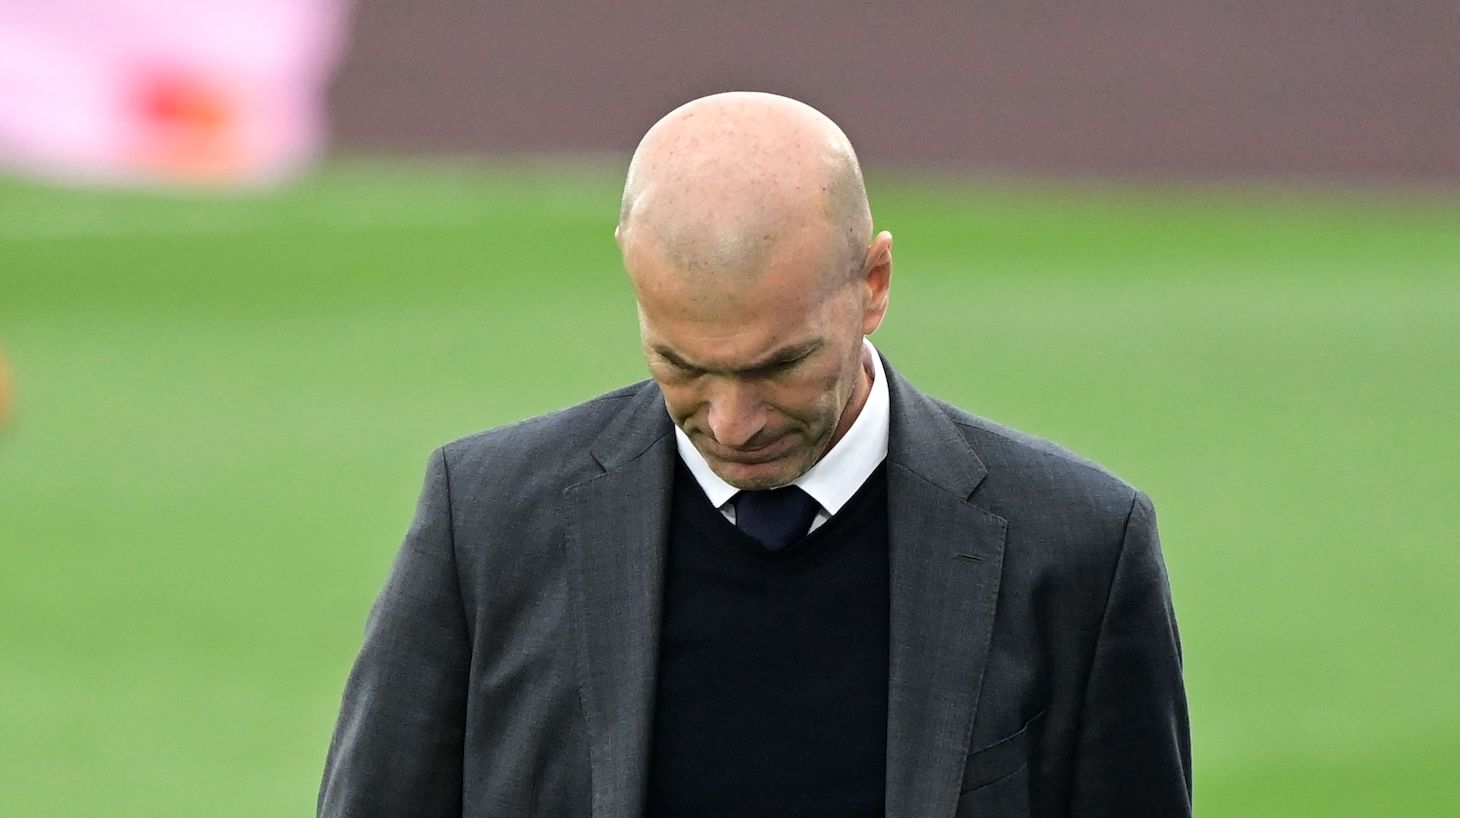 Real Madrid's French coach Zinedine Zidane reacts during the Spanish league football match Real Madrid CF against Villarreal CF at the Alfredo di Stefano stadium in Valdebebas, on the outskirts of Madrid, on May 22, 2021.